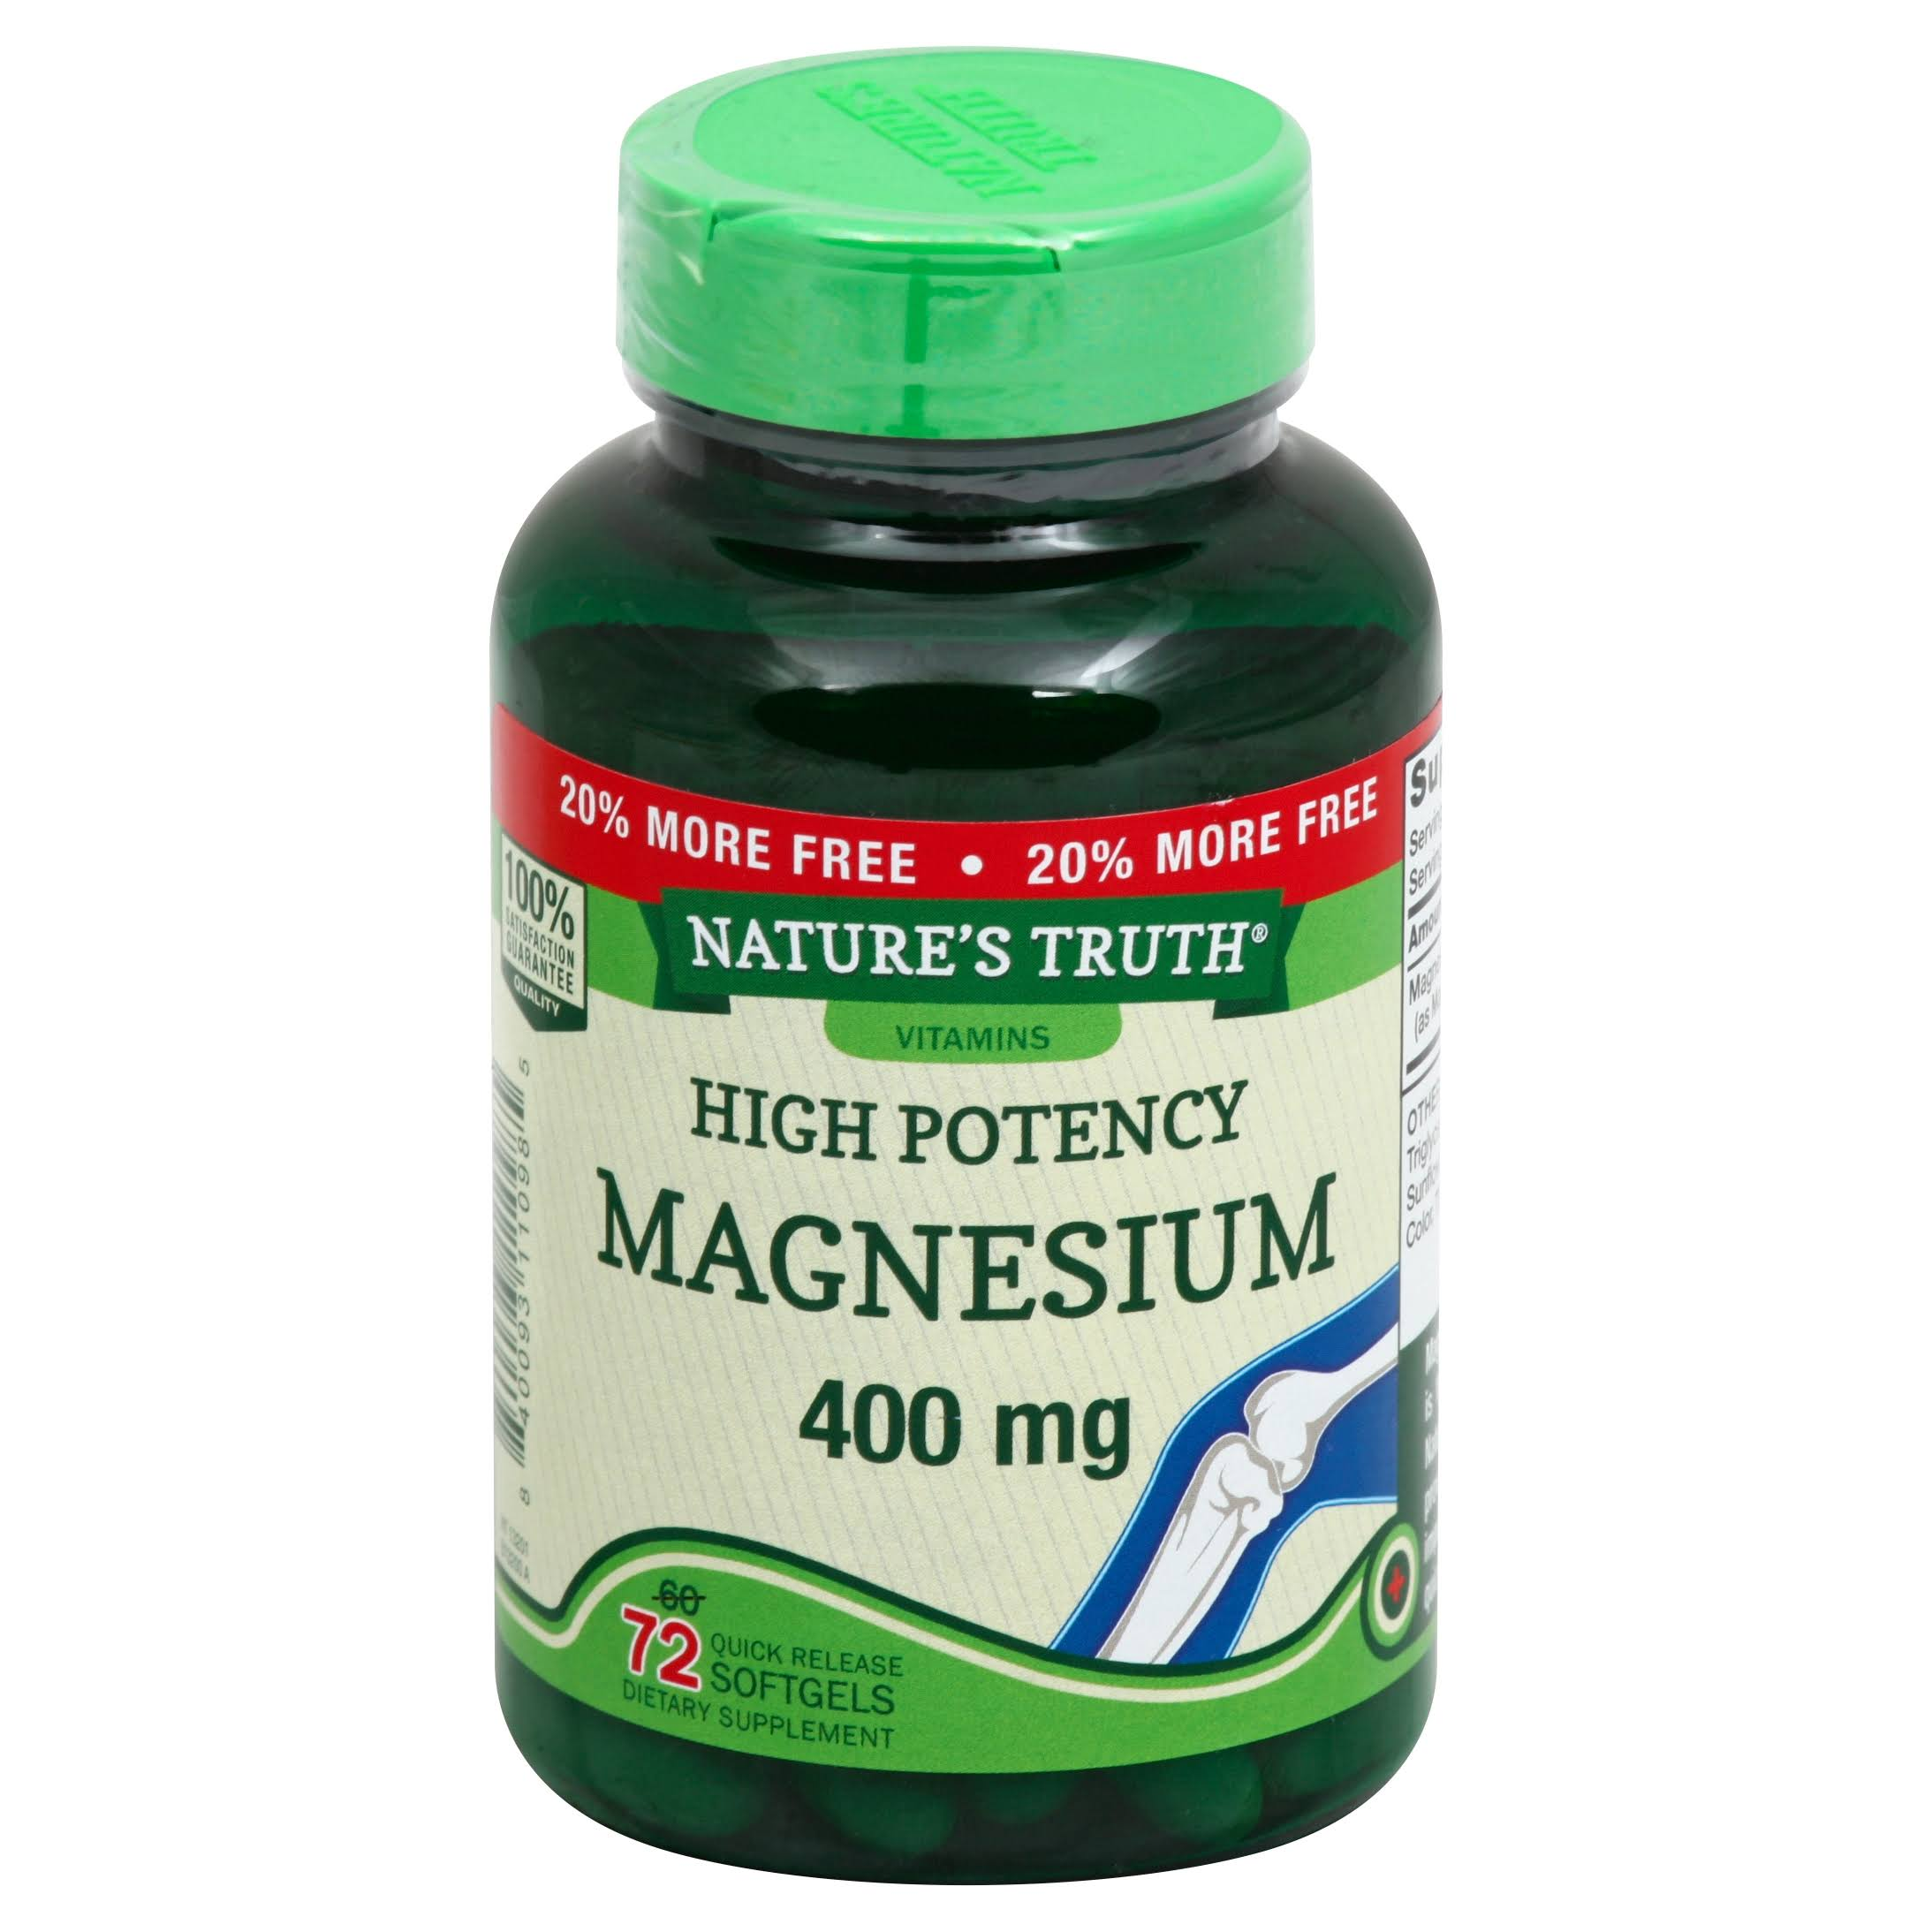 Natures Truth Magnesium, High Potency, 400 mg, Quick Release Softgels - 72 softgels